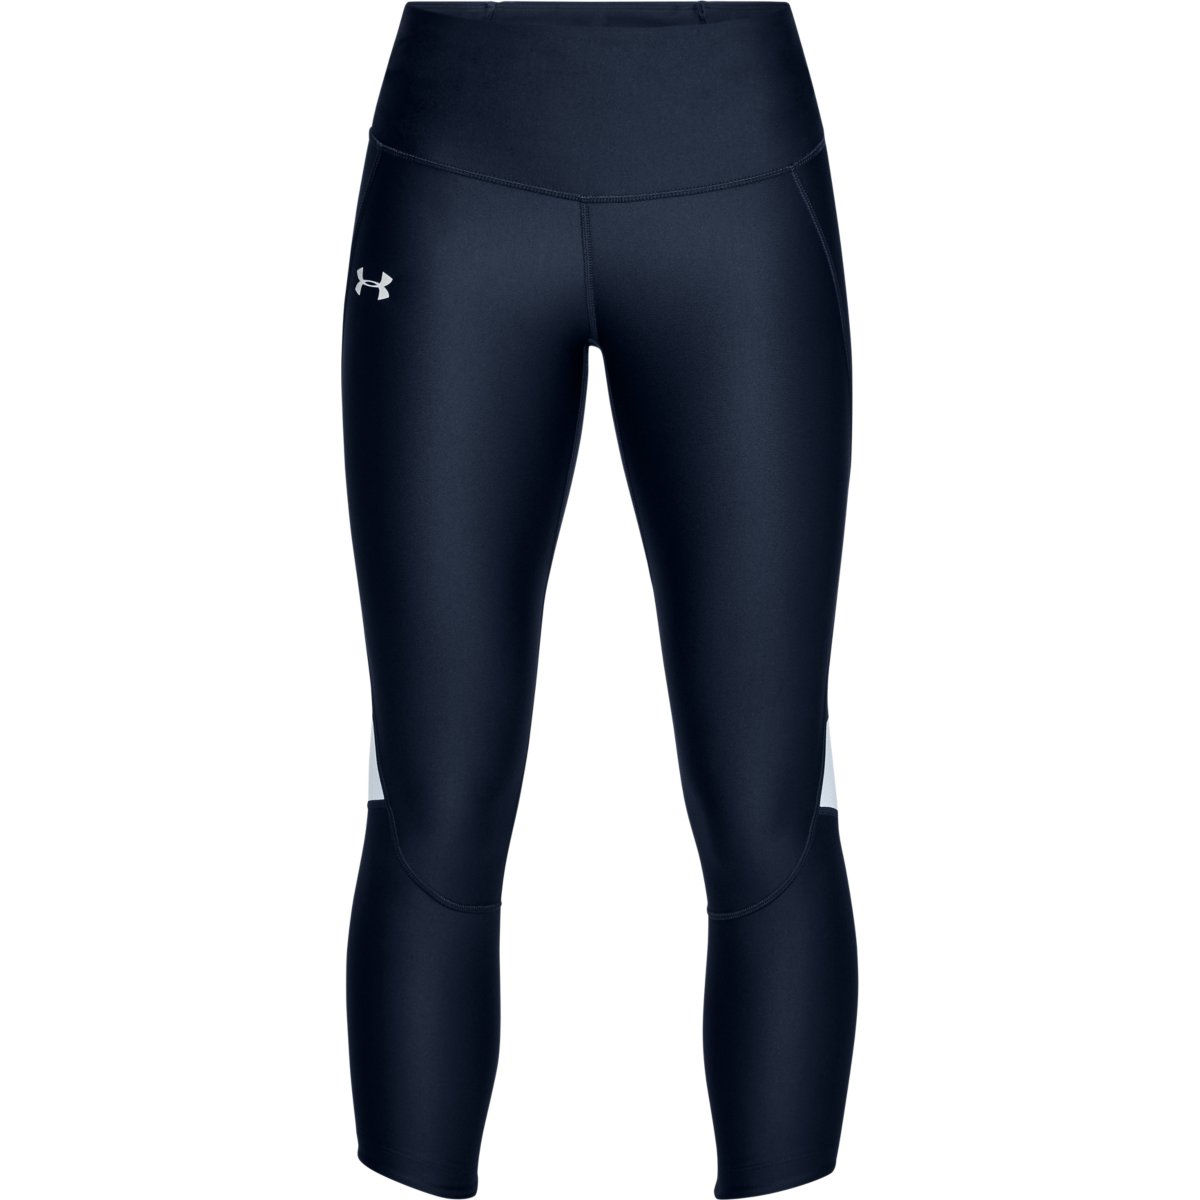 Image of Corsaire Femme Under Armour Superfast Run - XS Academy/Formation Bl